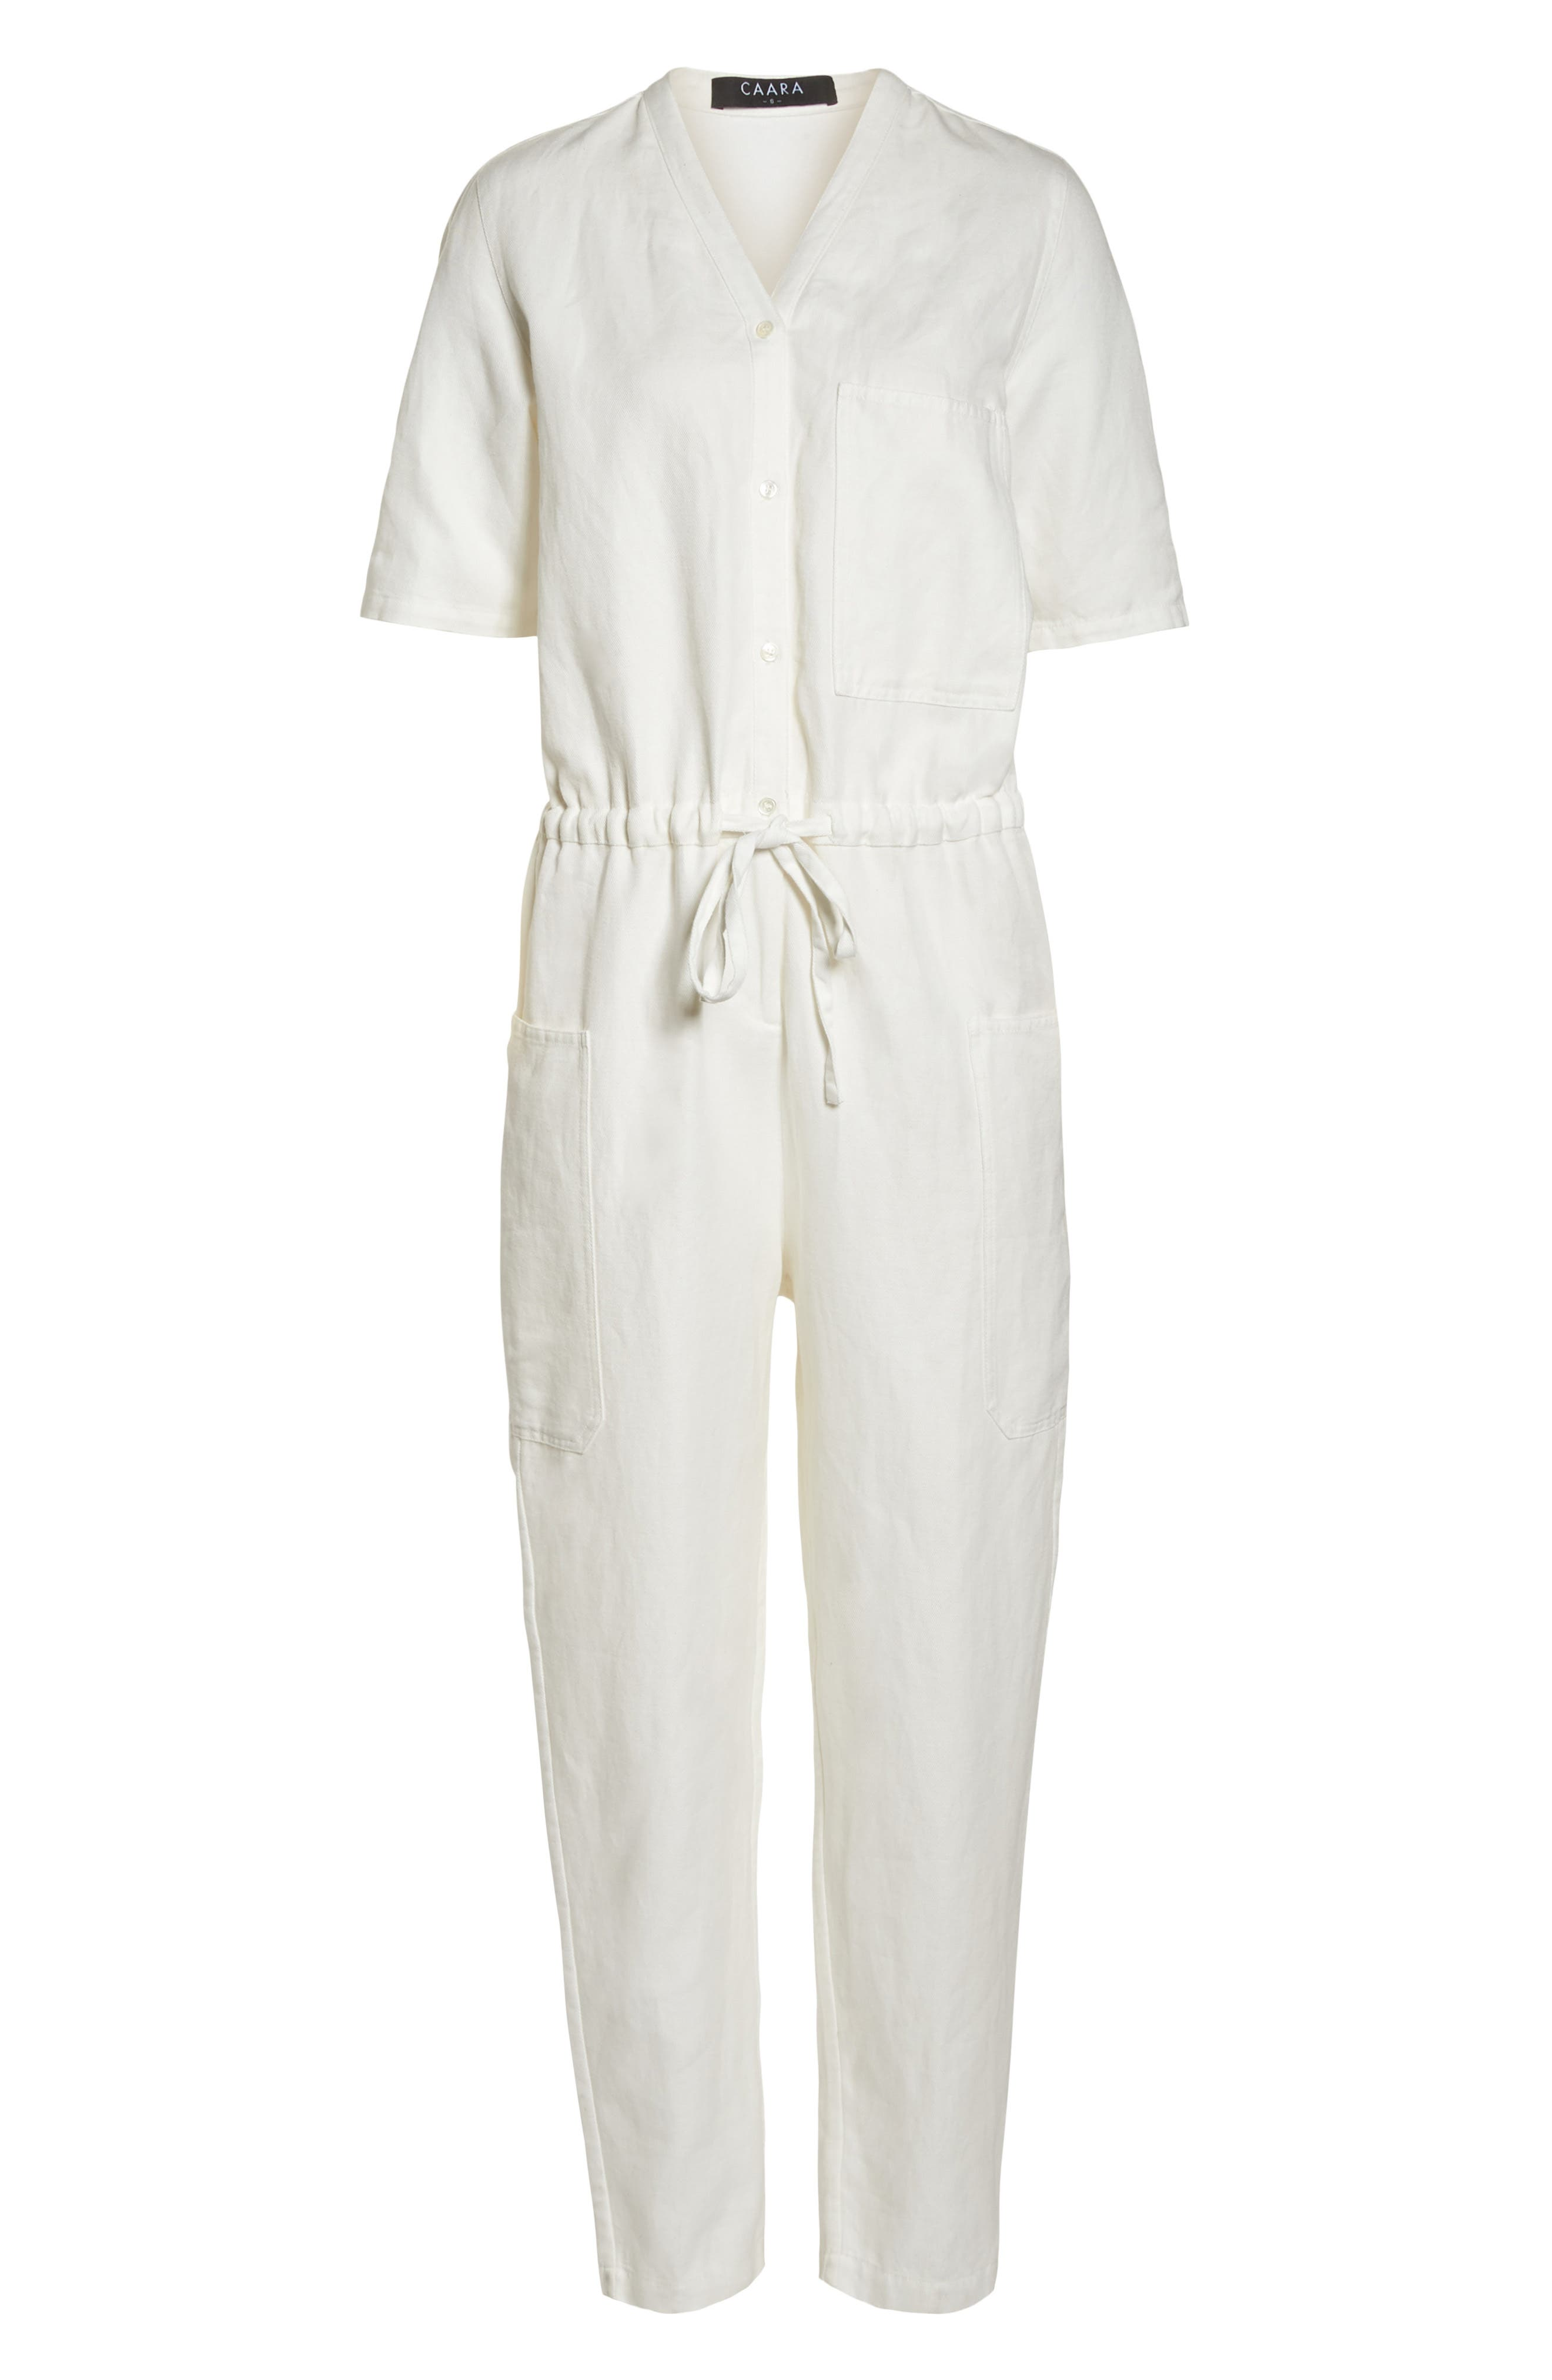 Keep It Cool Jumpsuit,                             Alternate thumbnail 7, color,                             White